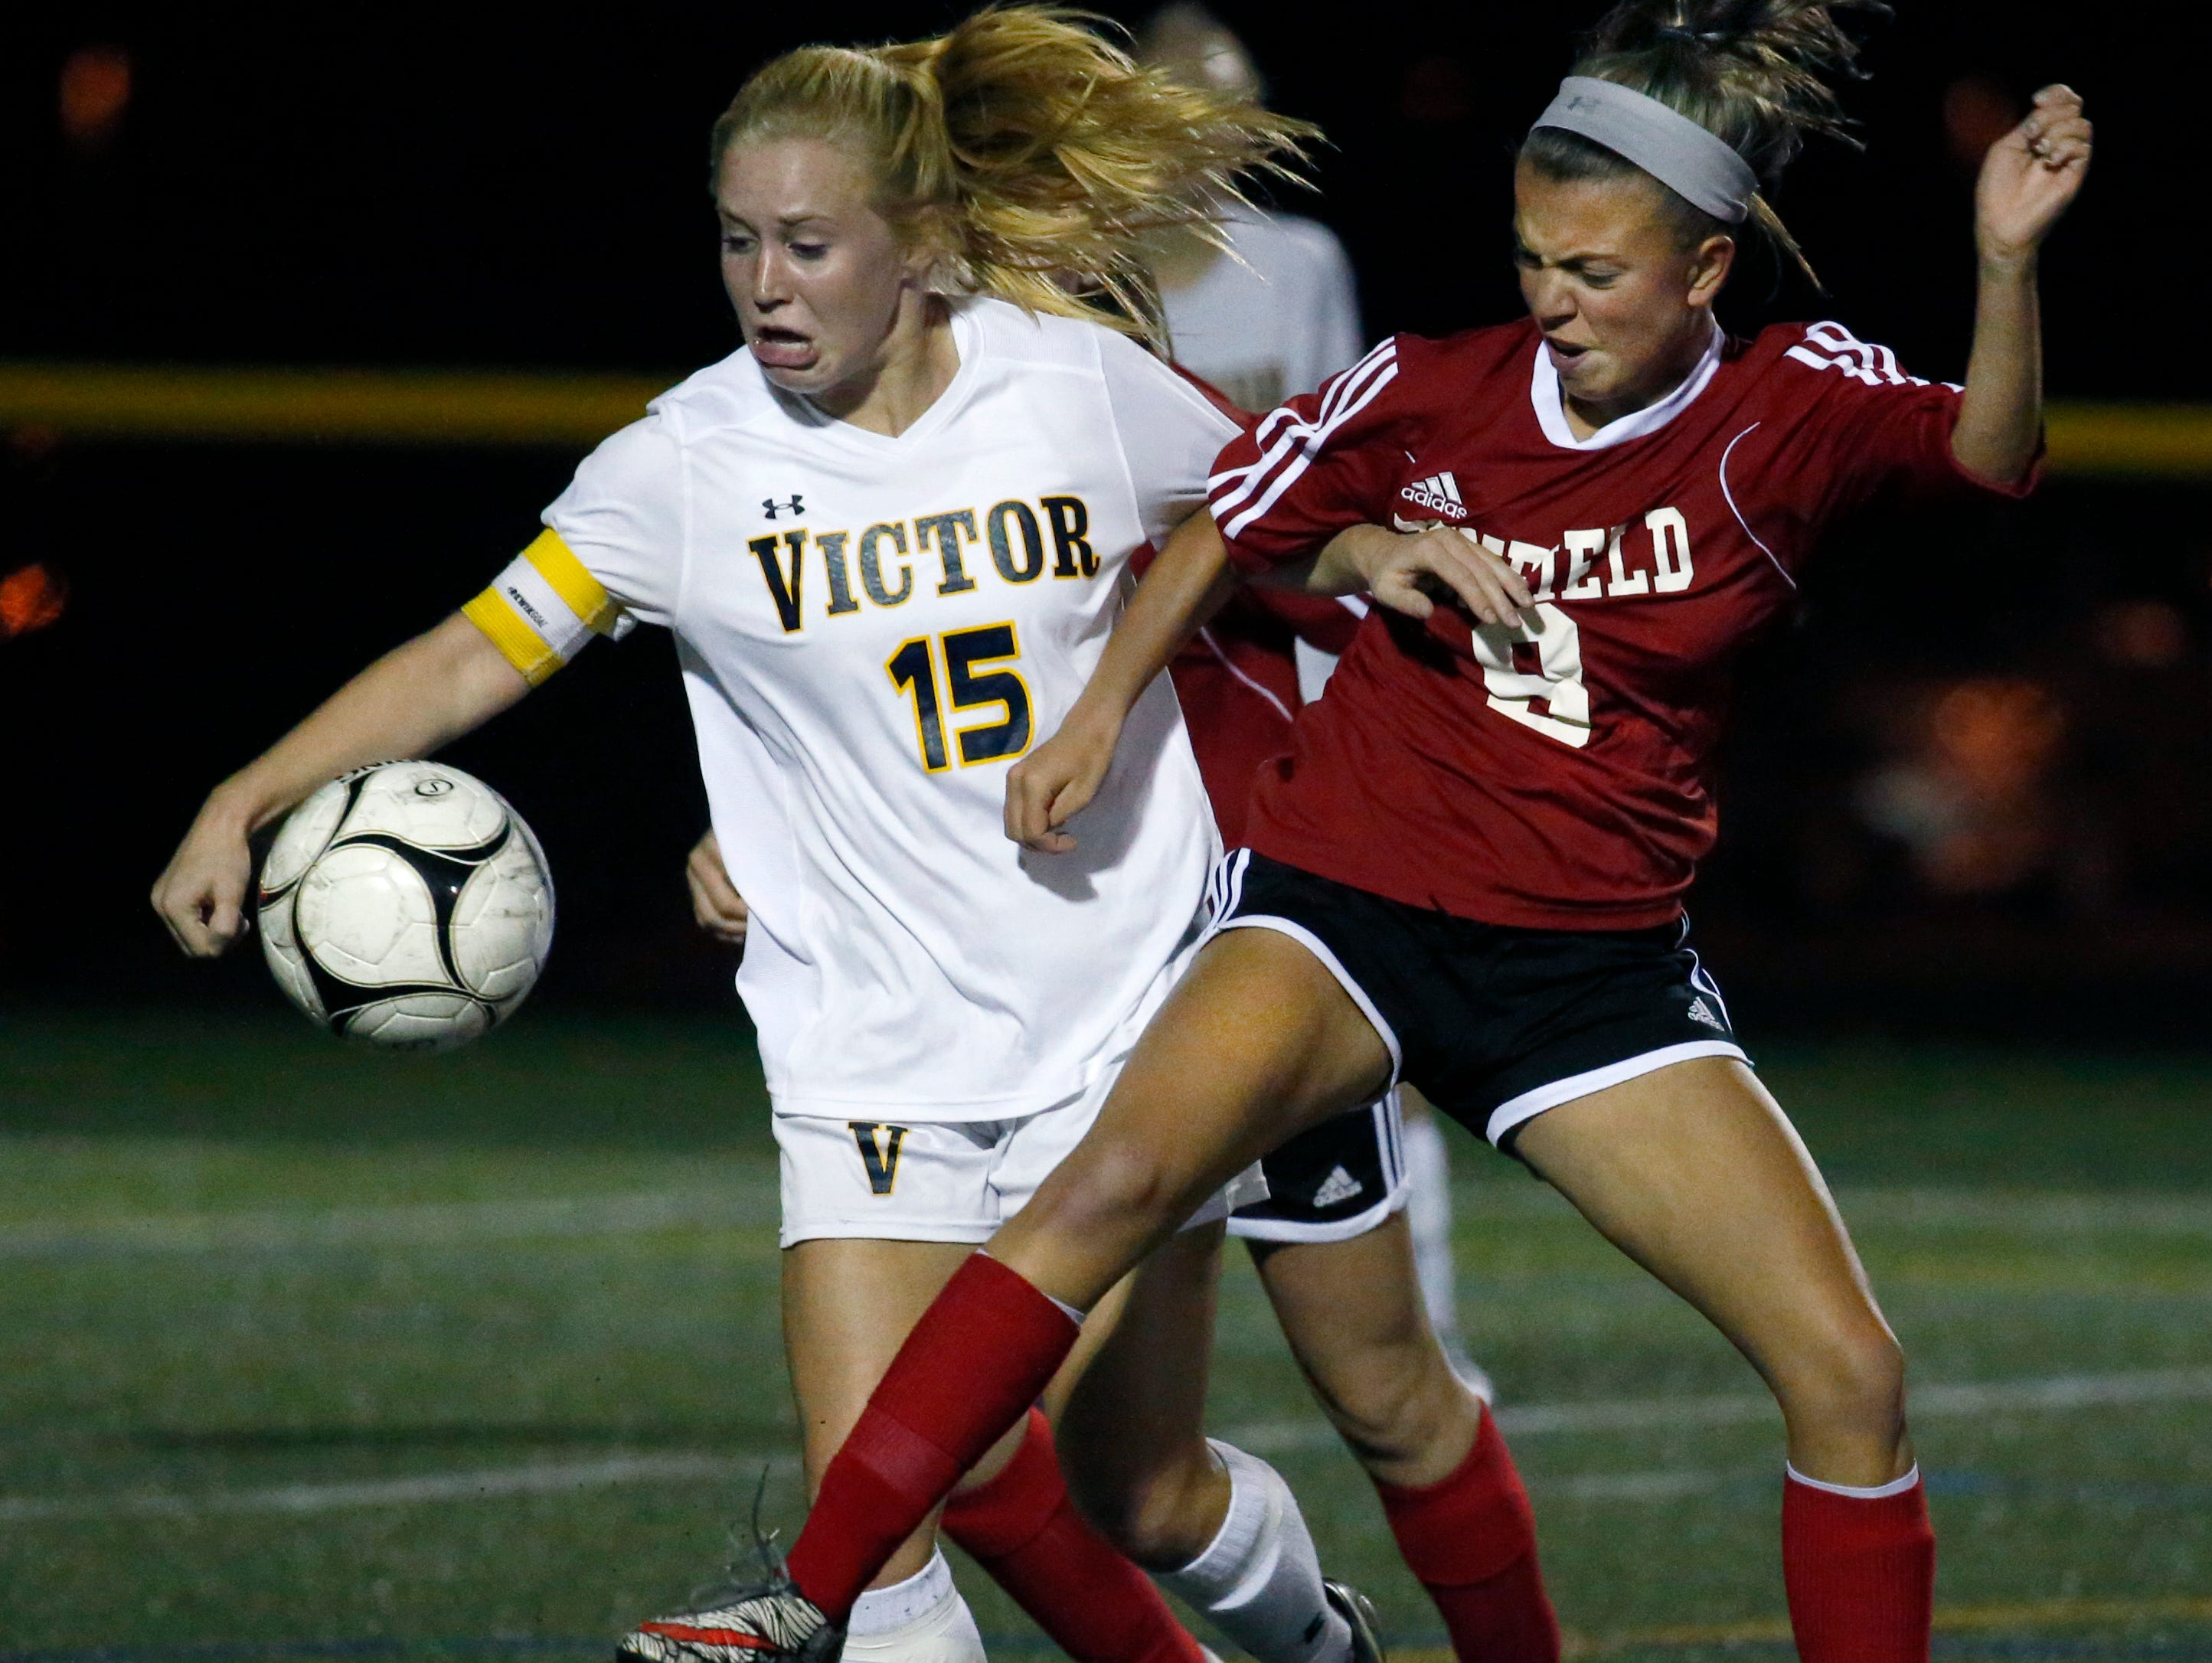 Victor's Kaci Messier and Penfield's Kinsey Uzalec in the first half at Webster Schroeder High School.